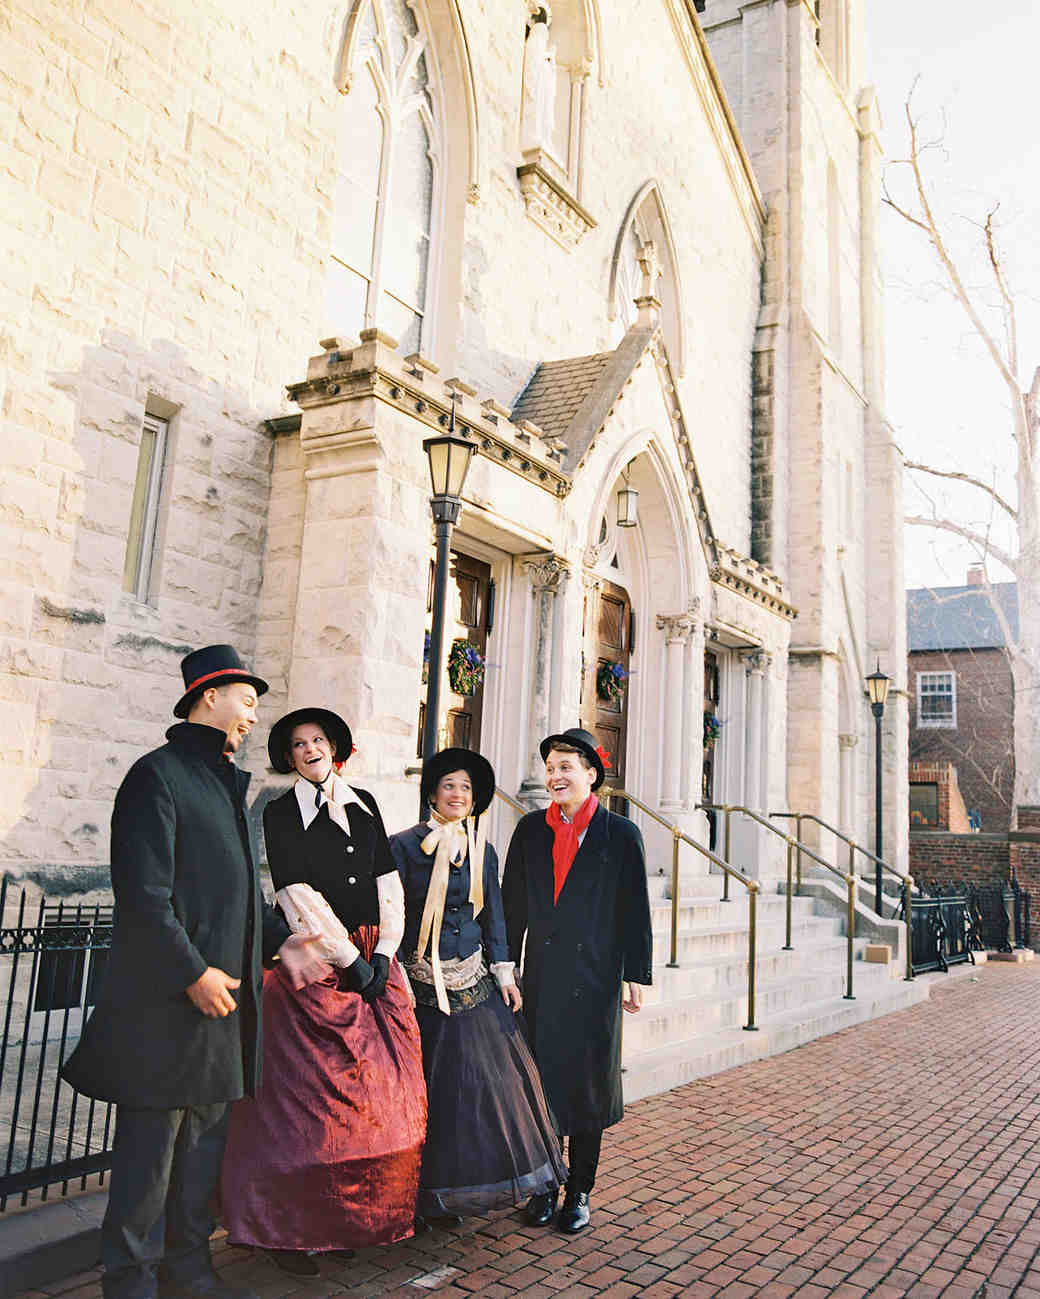 celina rob wedding virginia street carolers